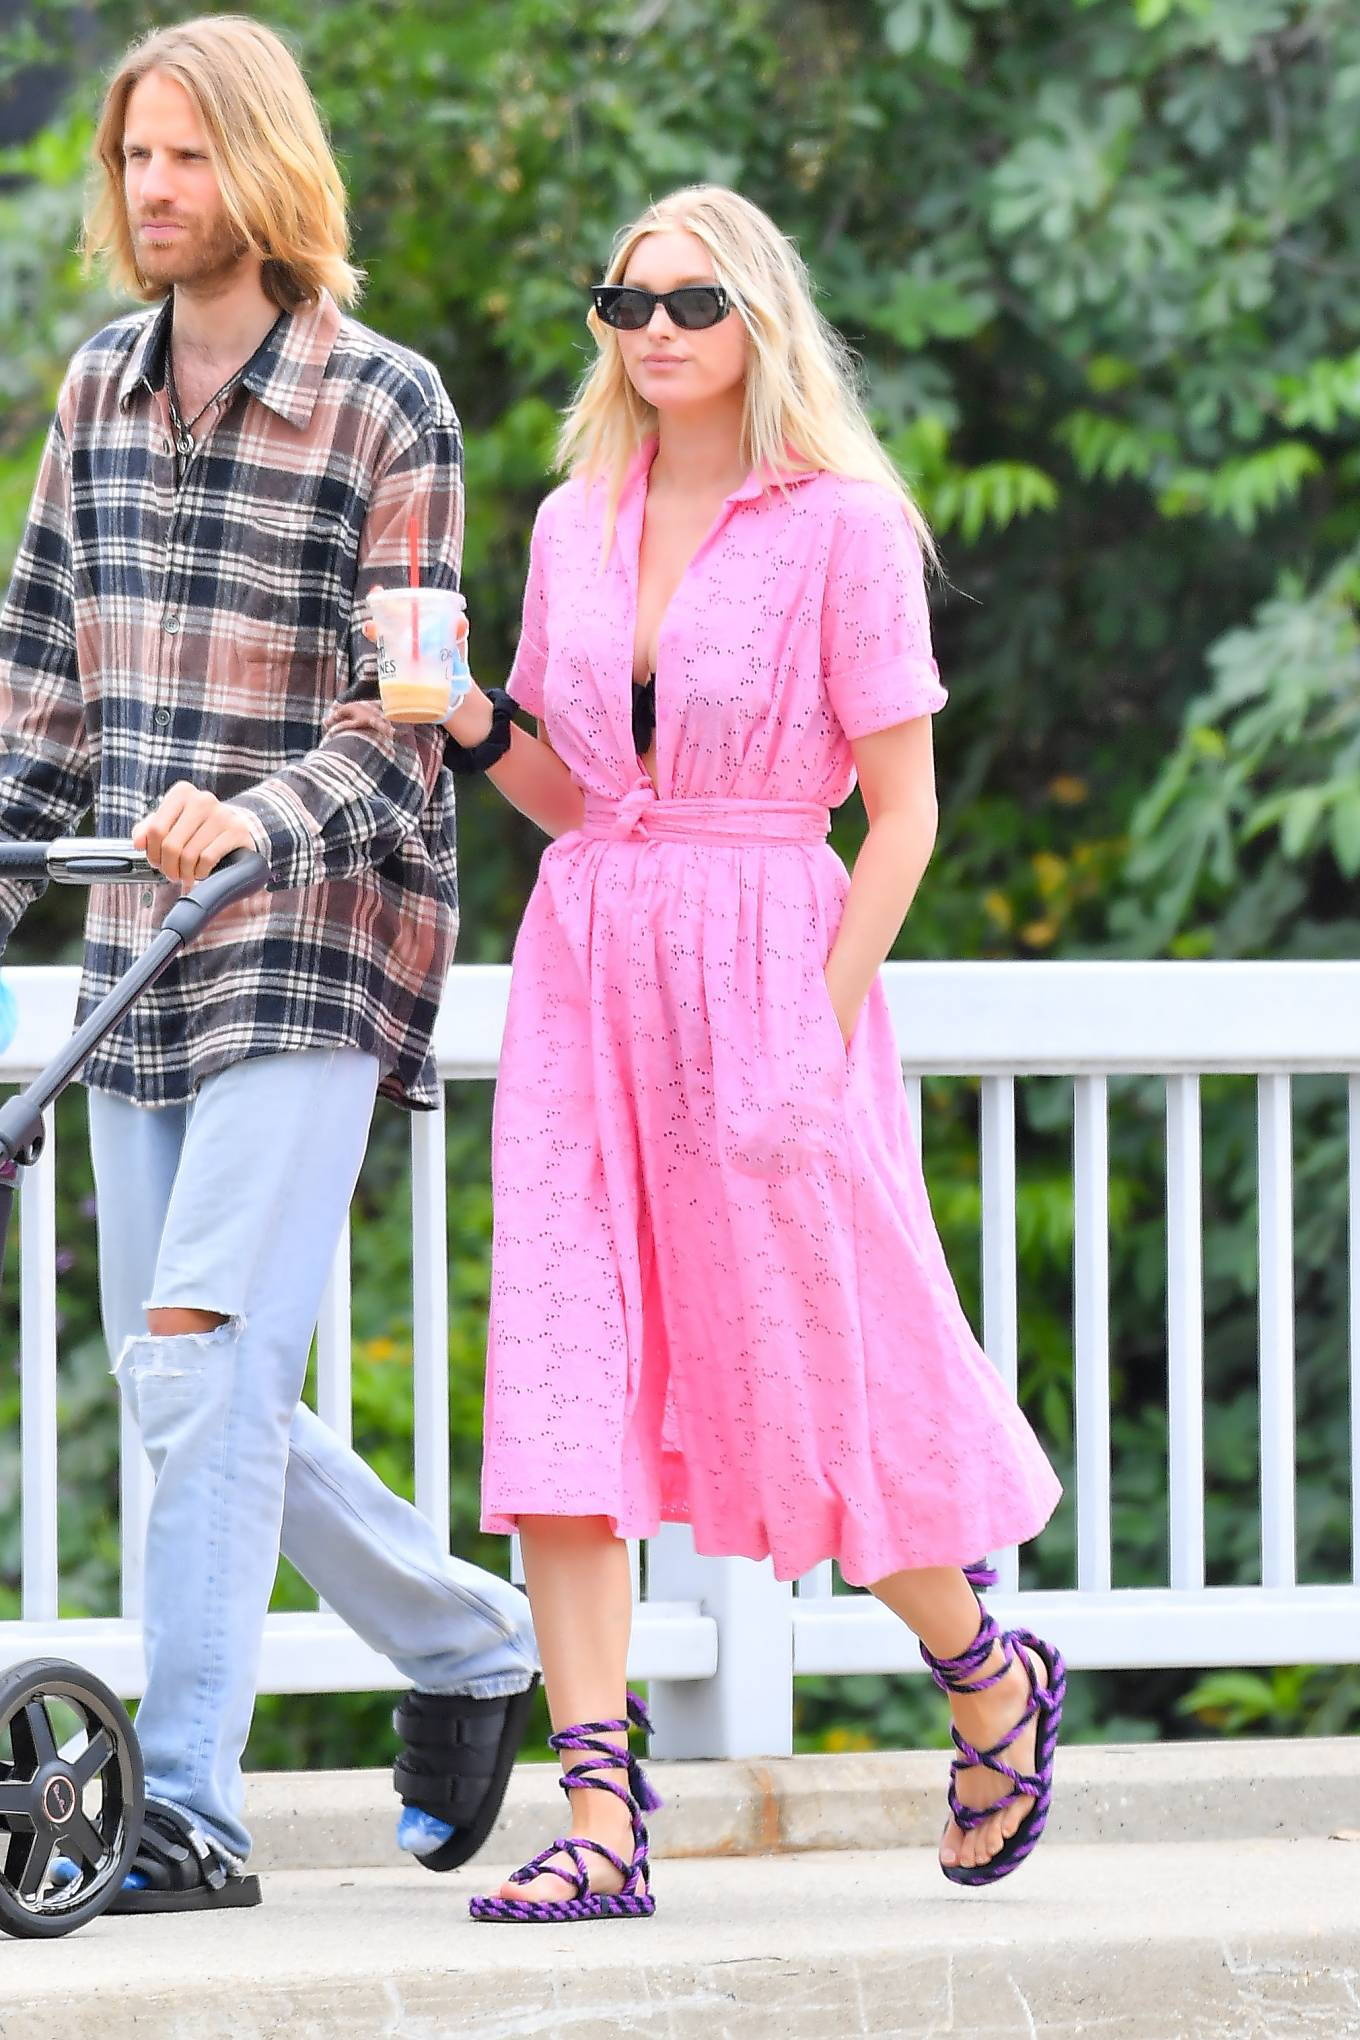 Elsa Hosk wearing a summery shirt dress with short sleeves, shirt collar and side pockets